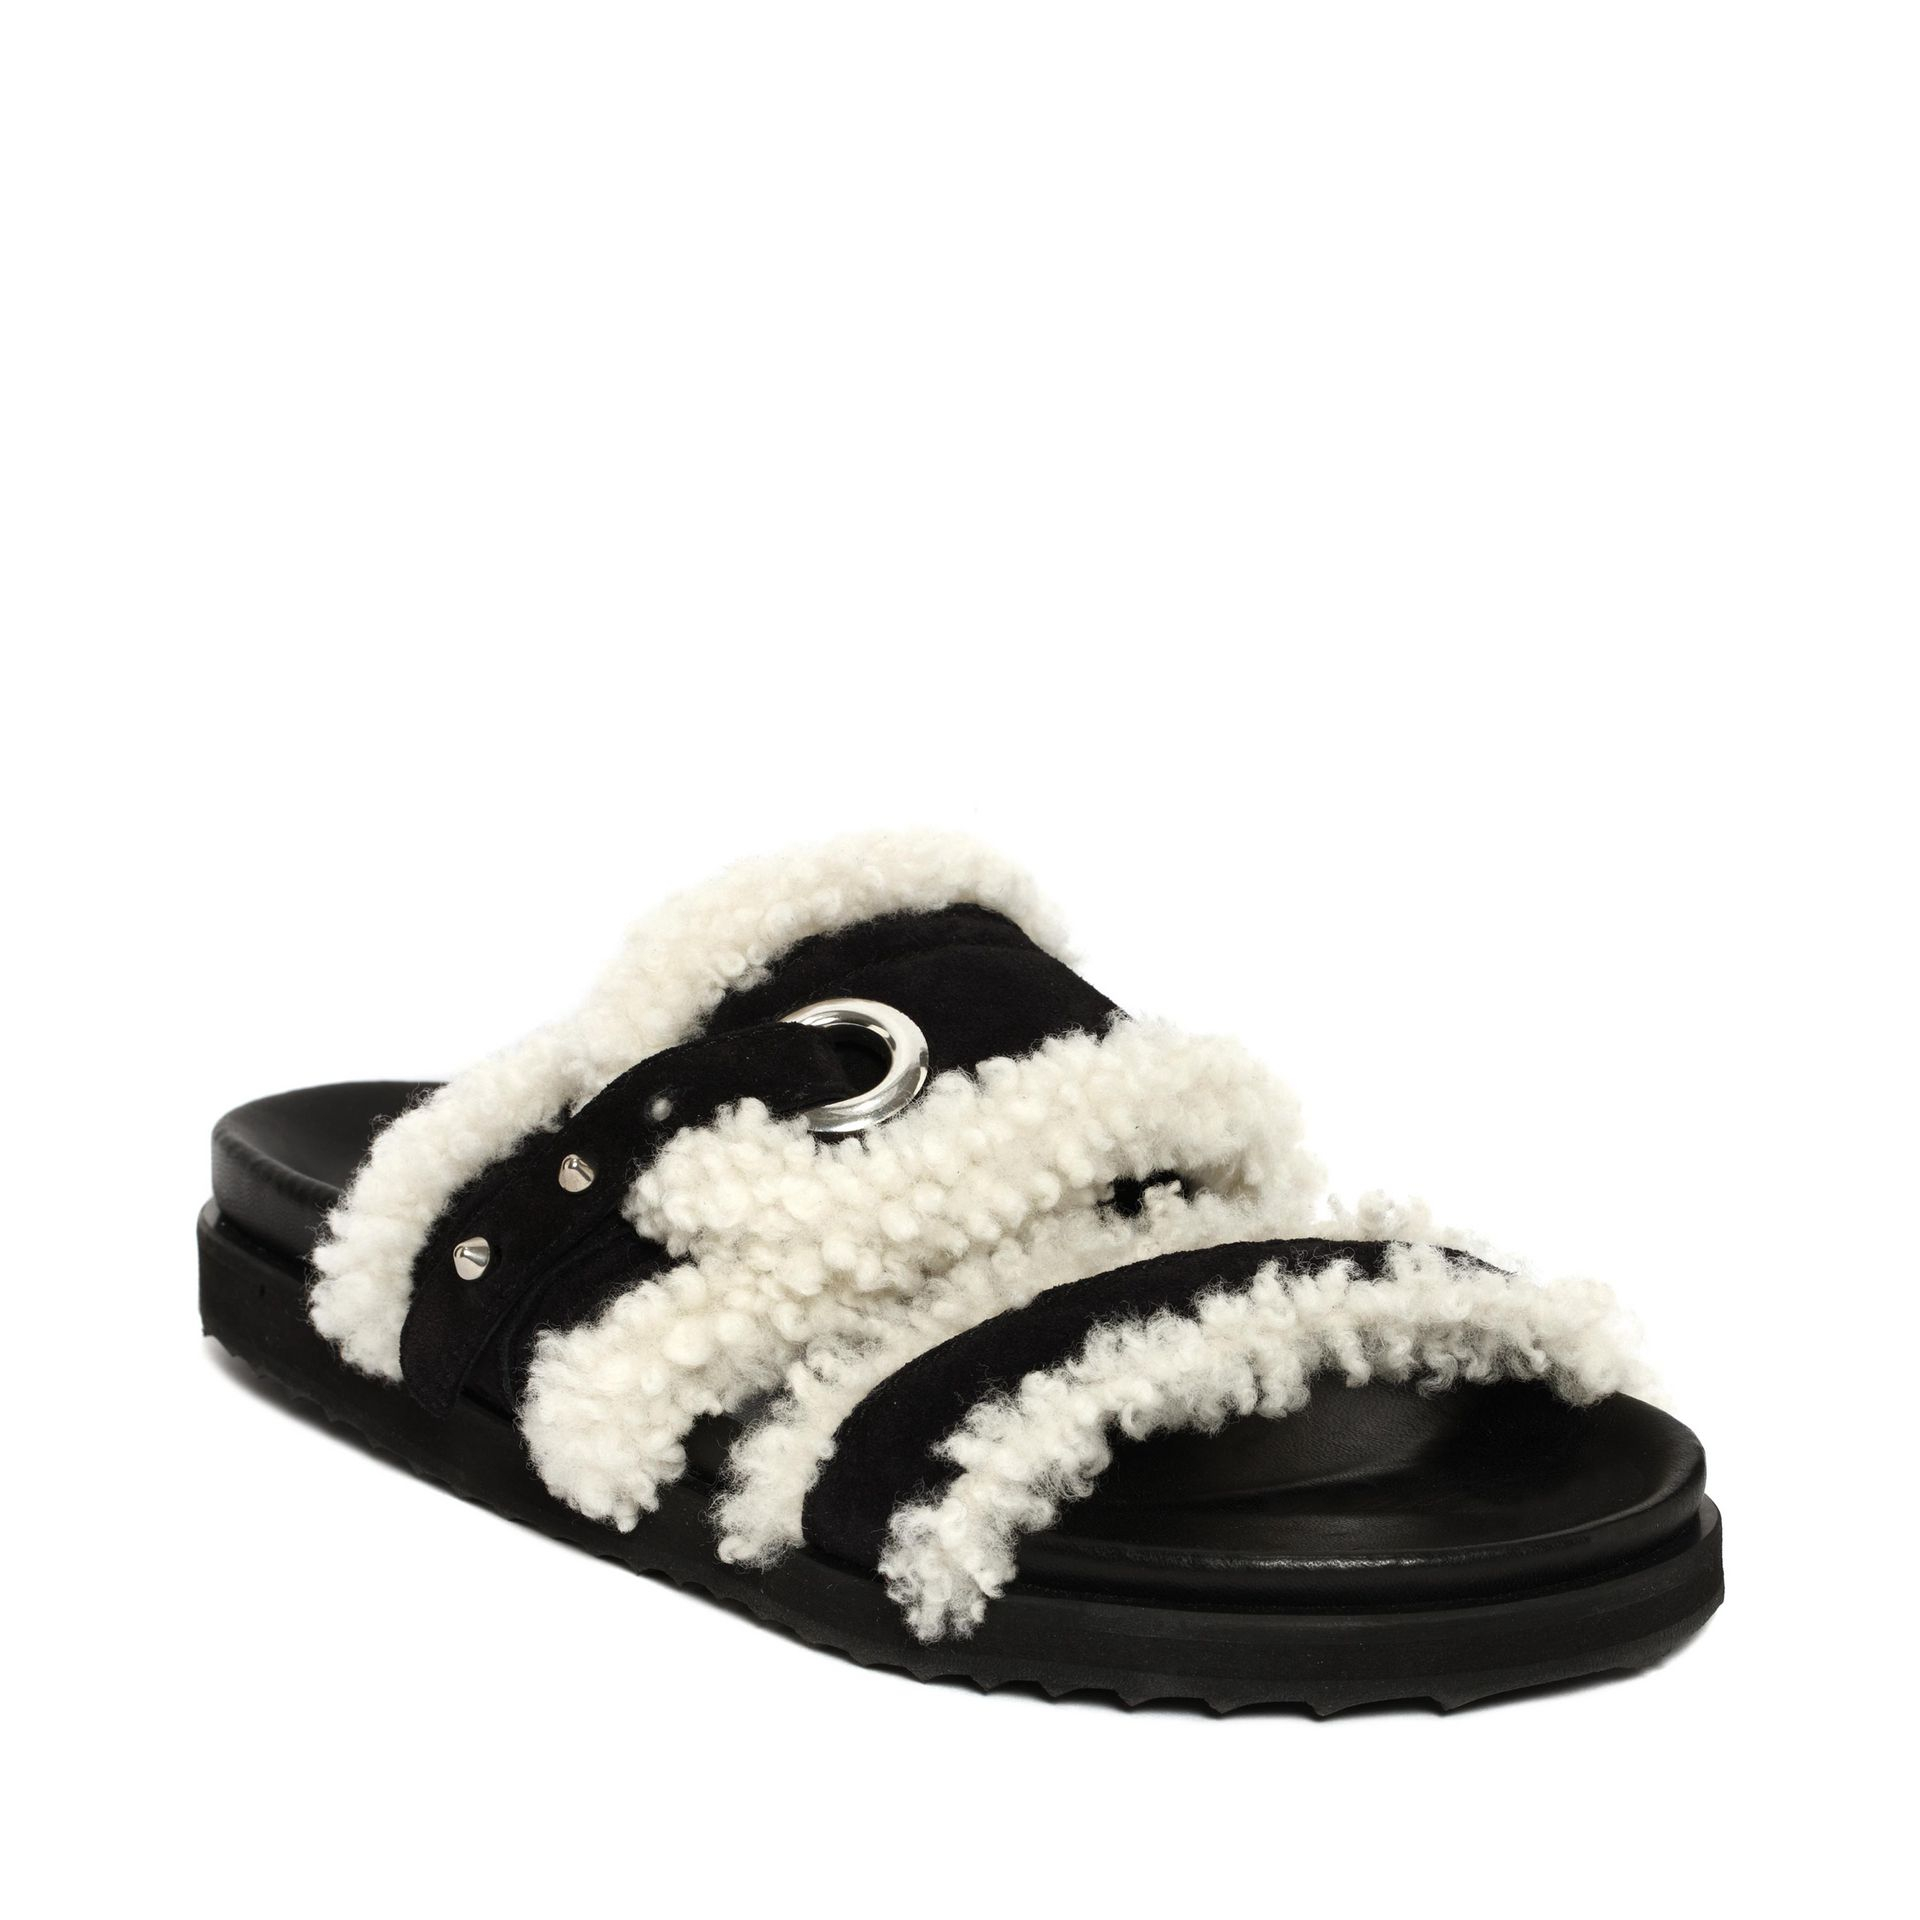 Suede and shearling sandals Alexander McQueen r3AEZn